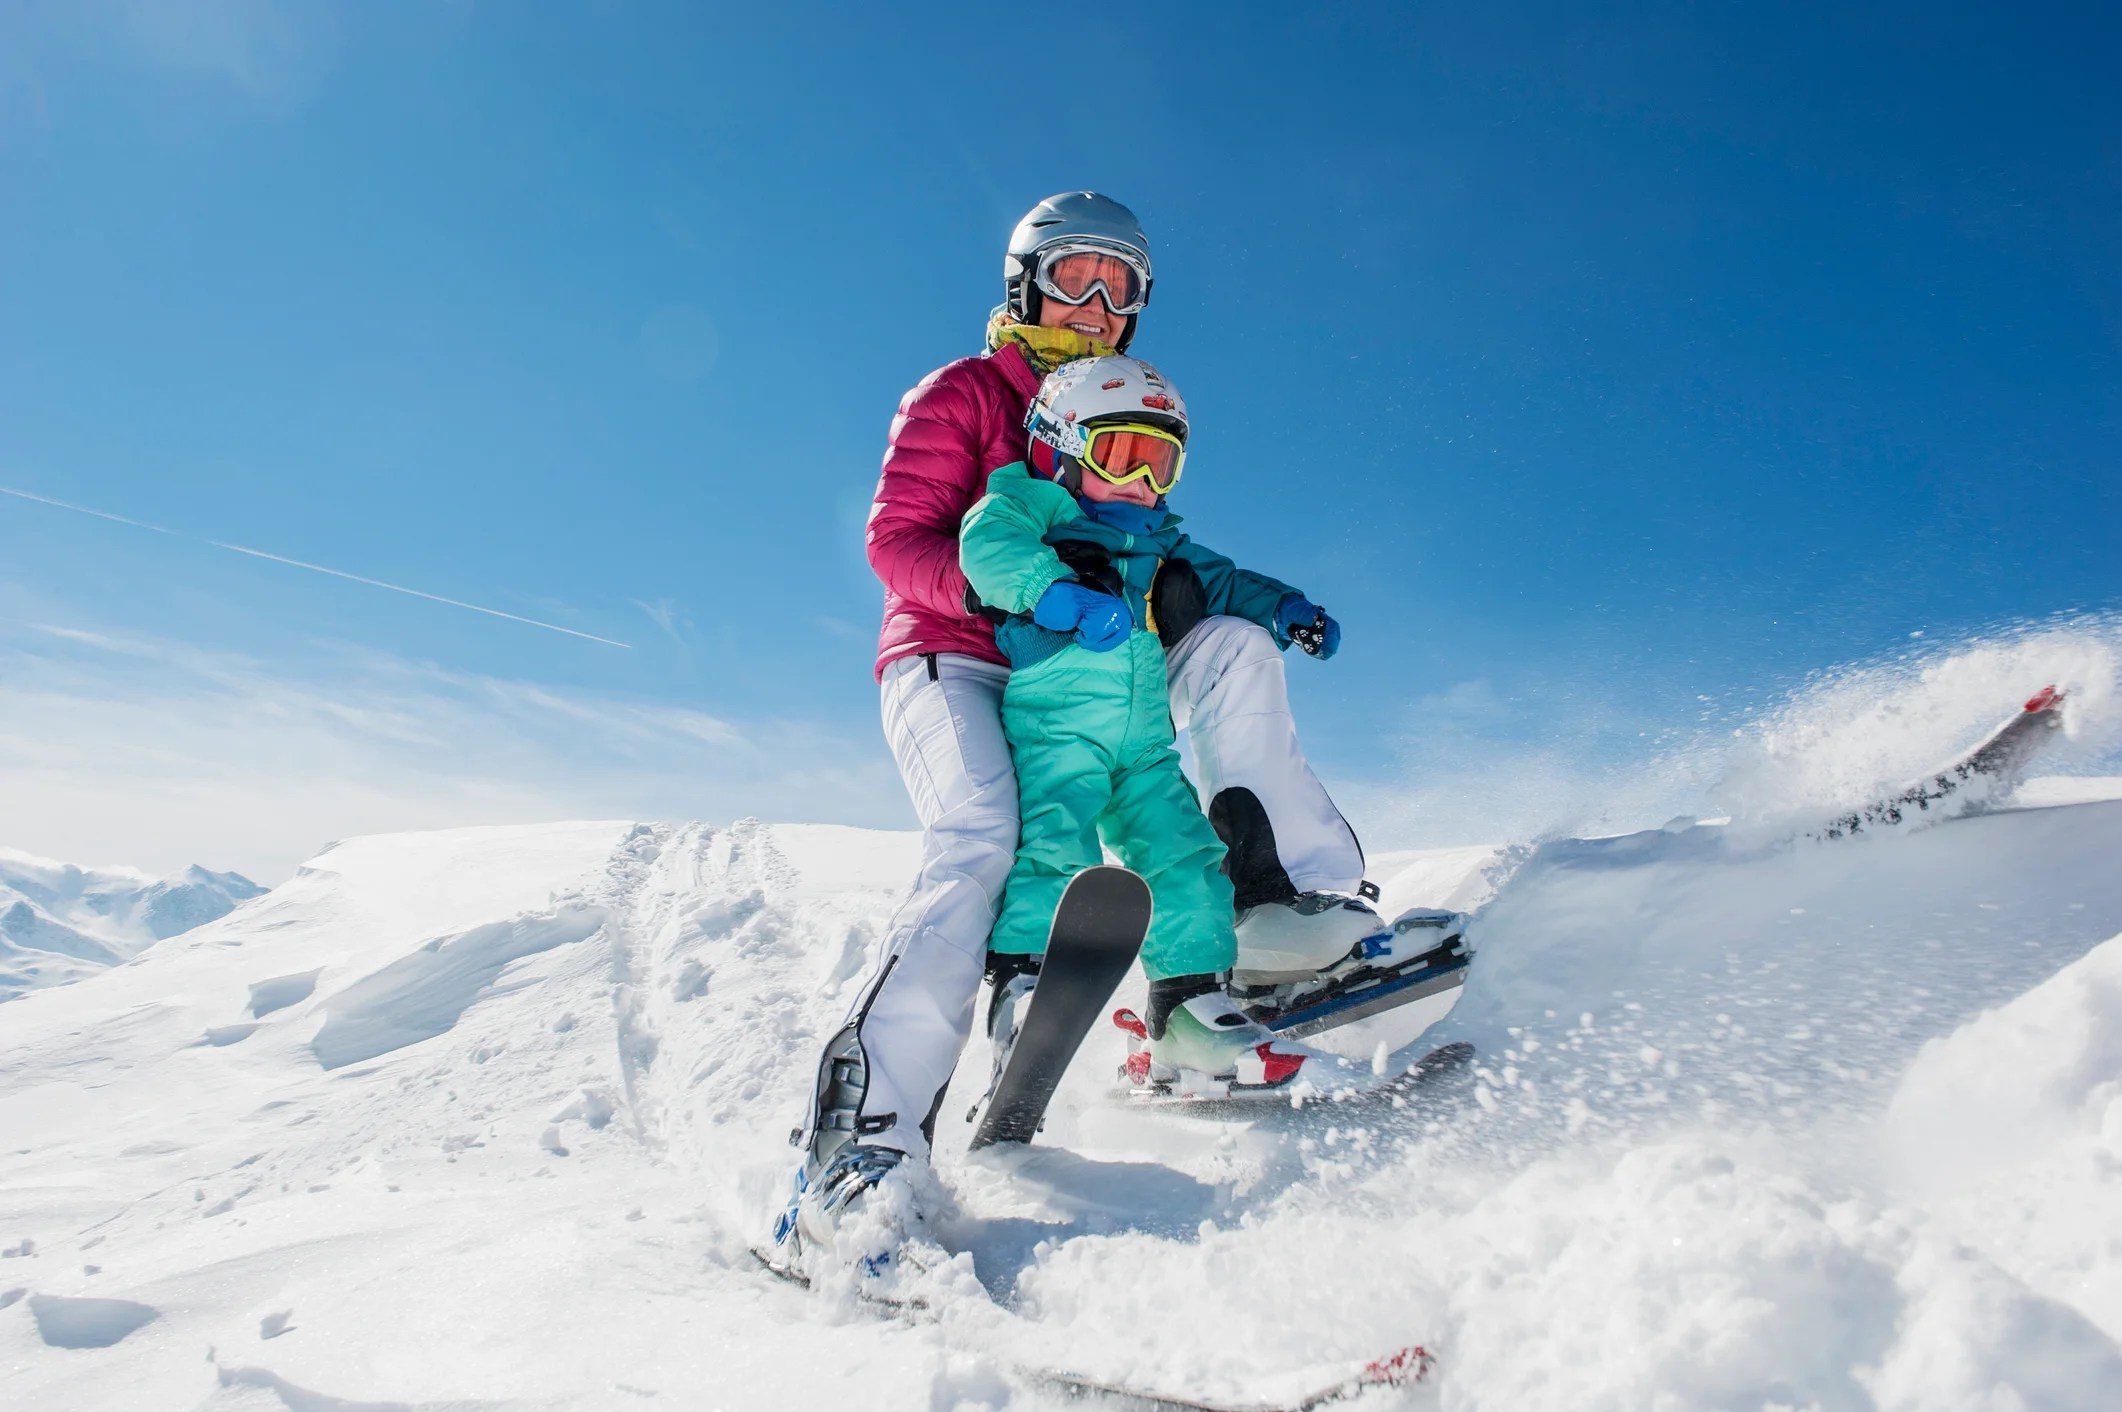 e7a3e8c6ee36 Kids Ski Free  Save on Your Family s Next Ski Vacation